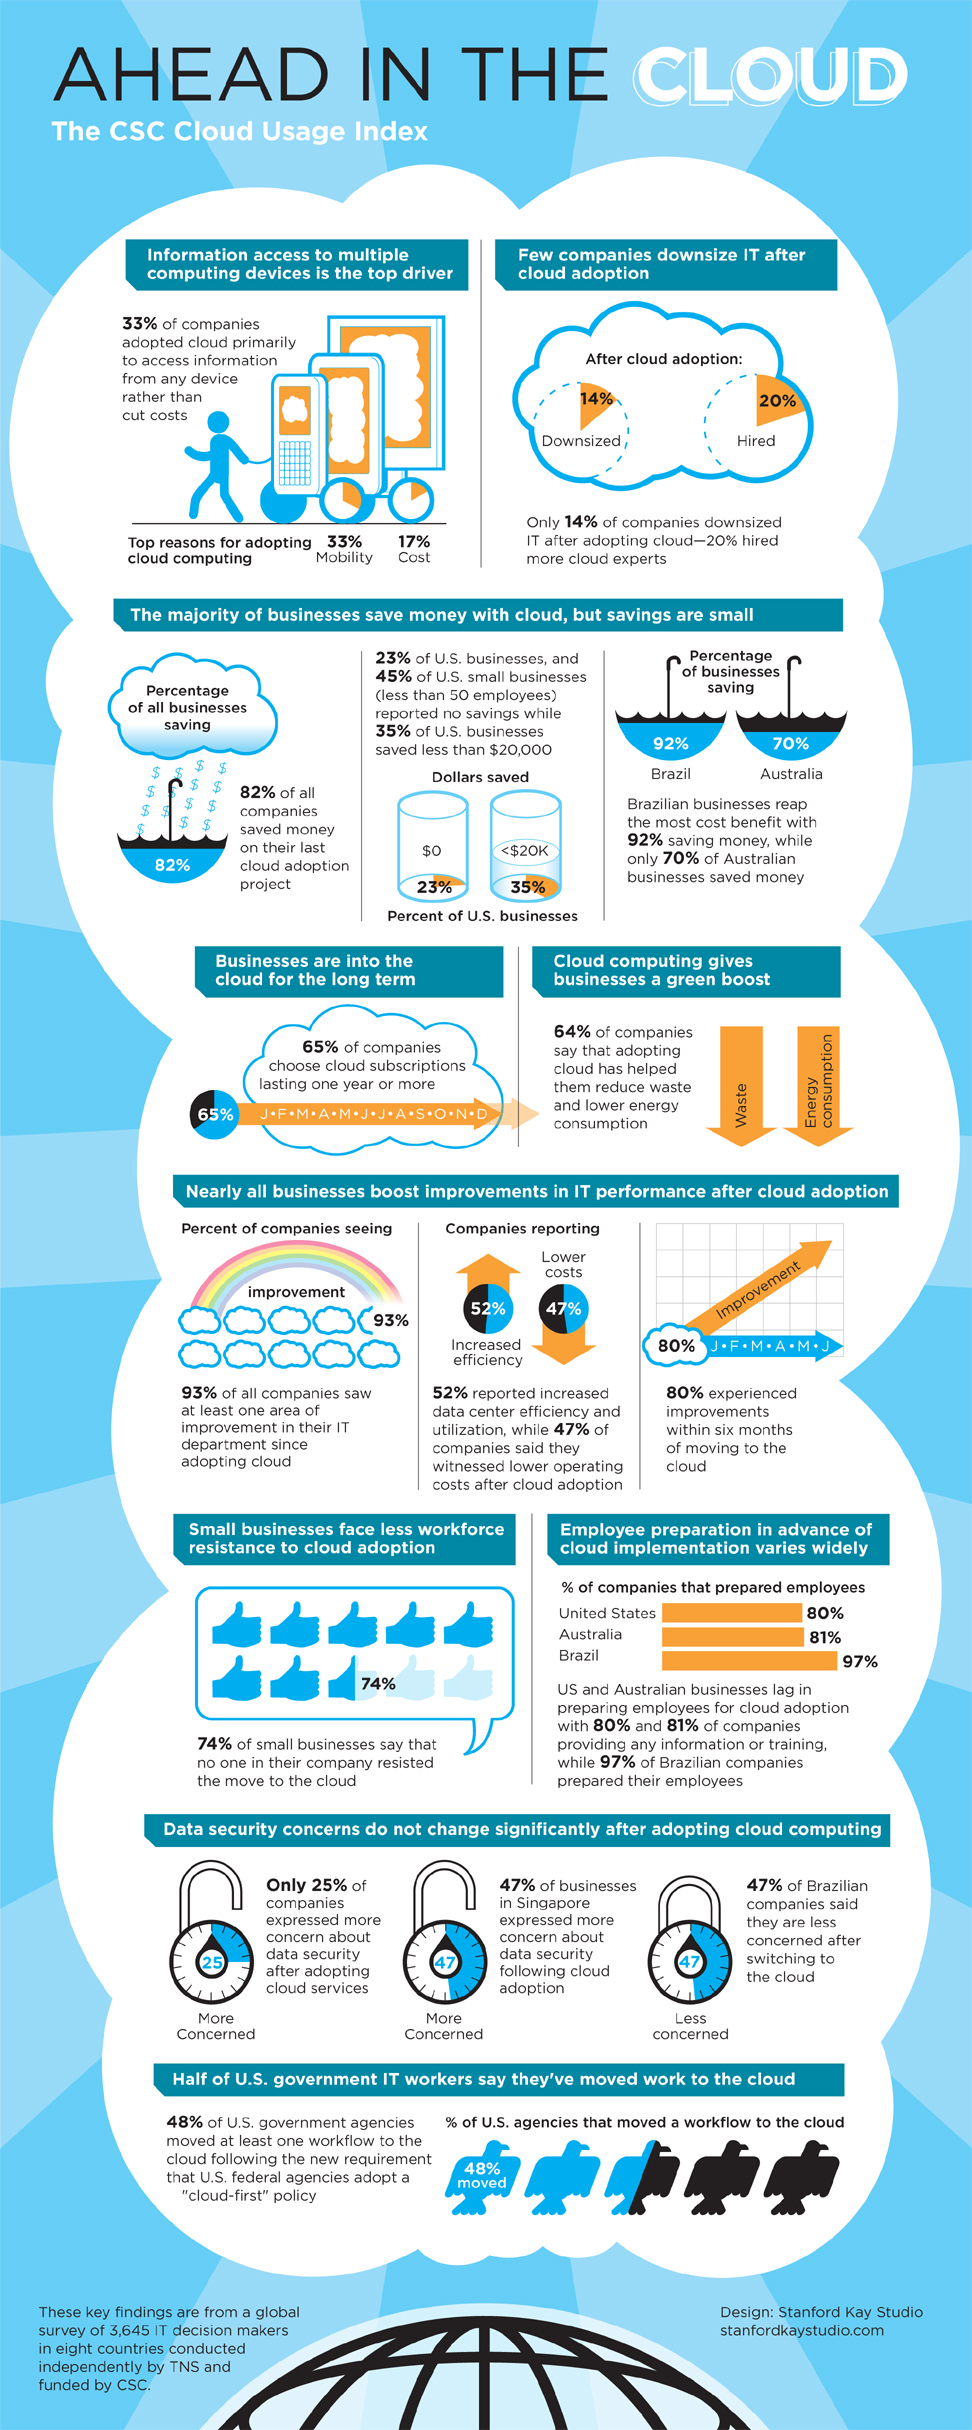 csc-cloud-index-infographic-972.jpg